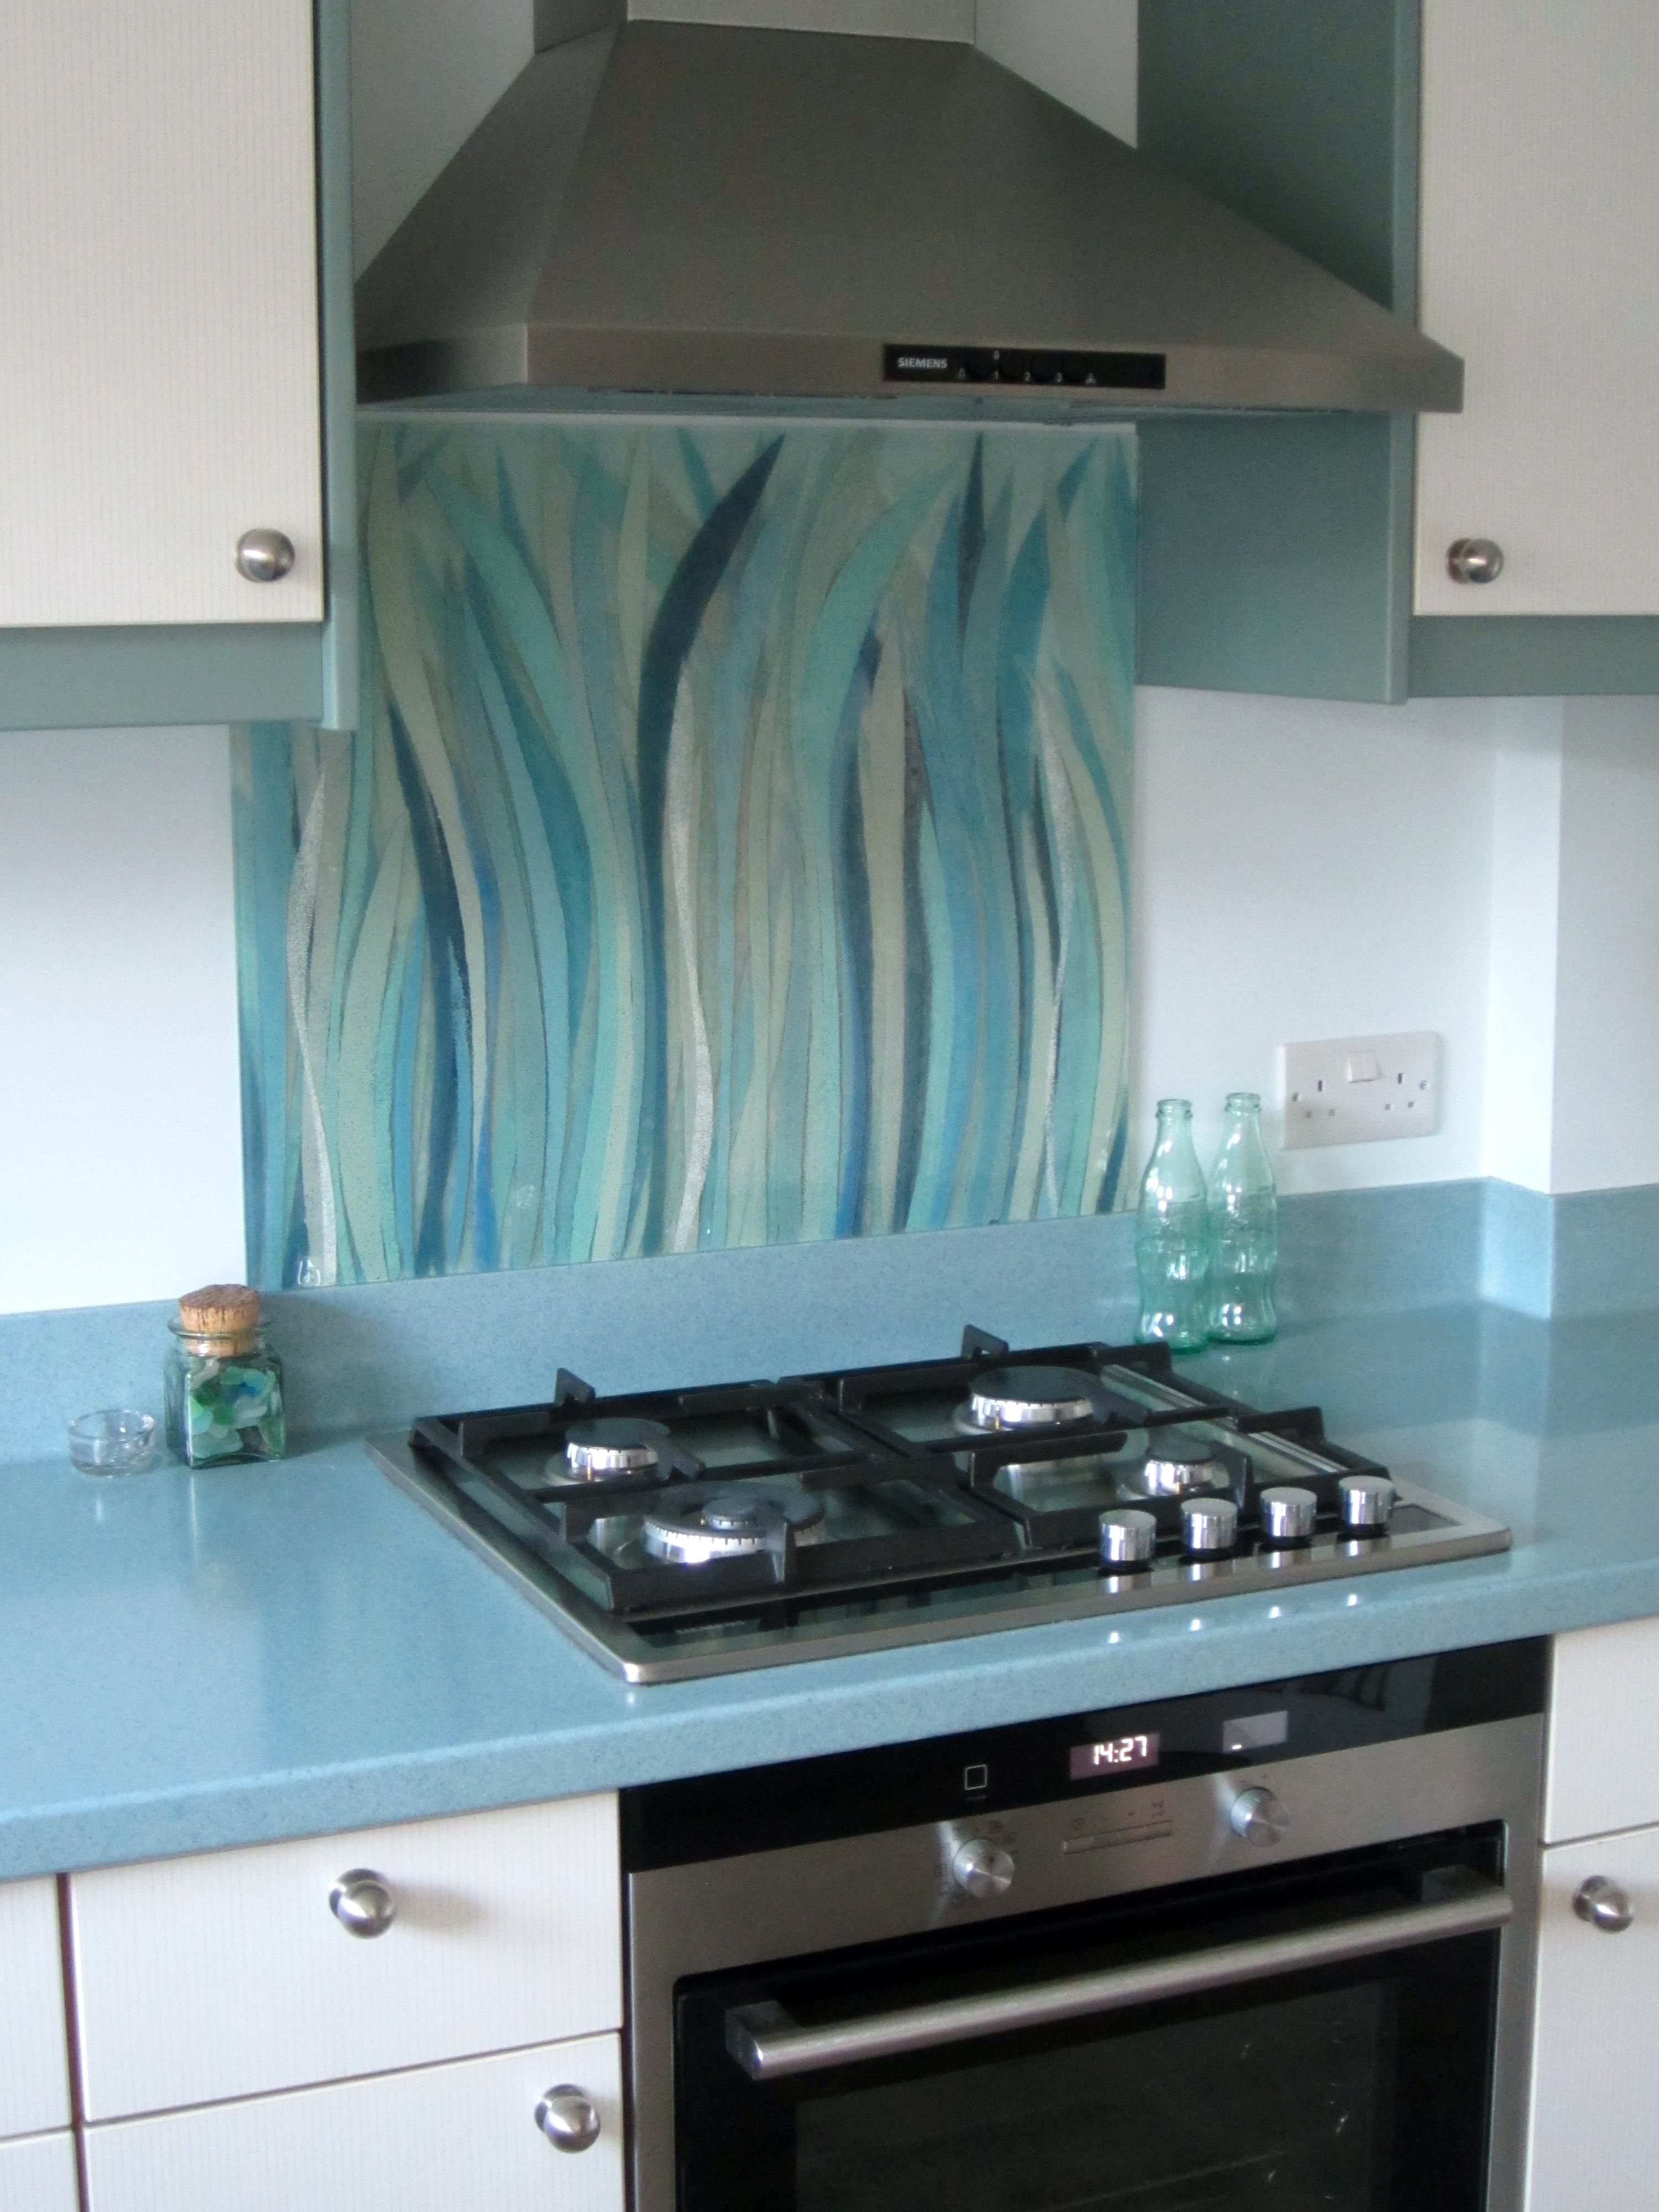 This splashback is in \